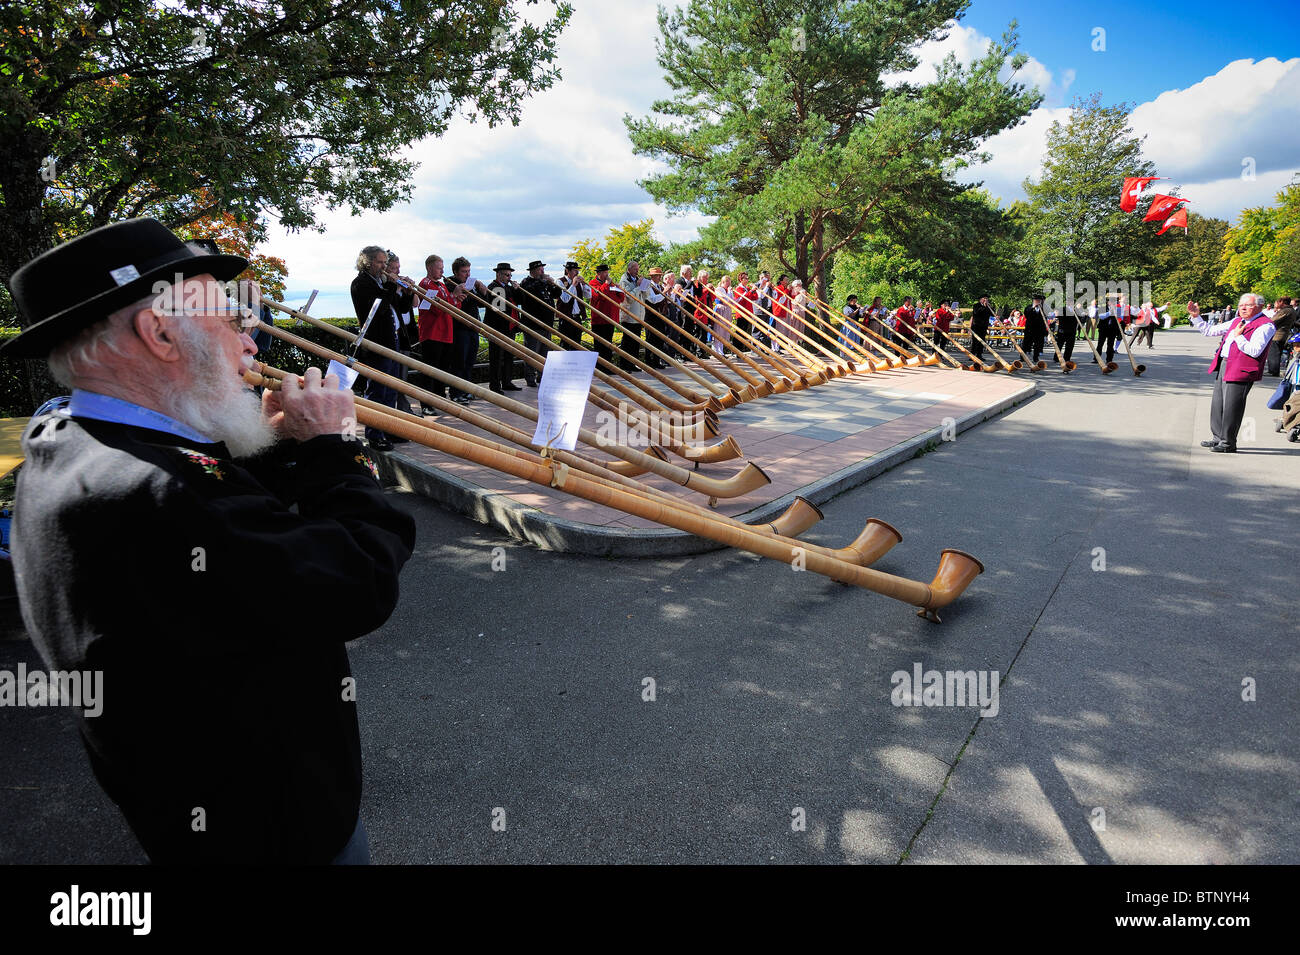 A large ensemble of Swiss alphorn players with traditional flag throwing taking place in the background - Stock Image